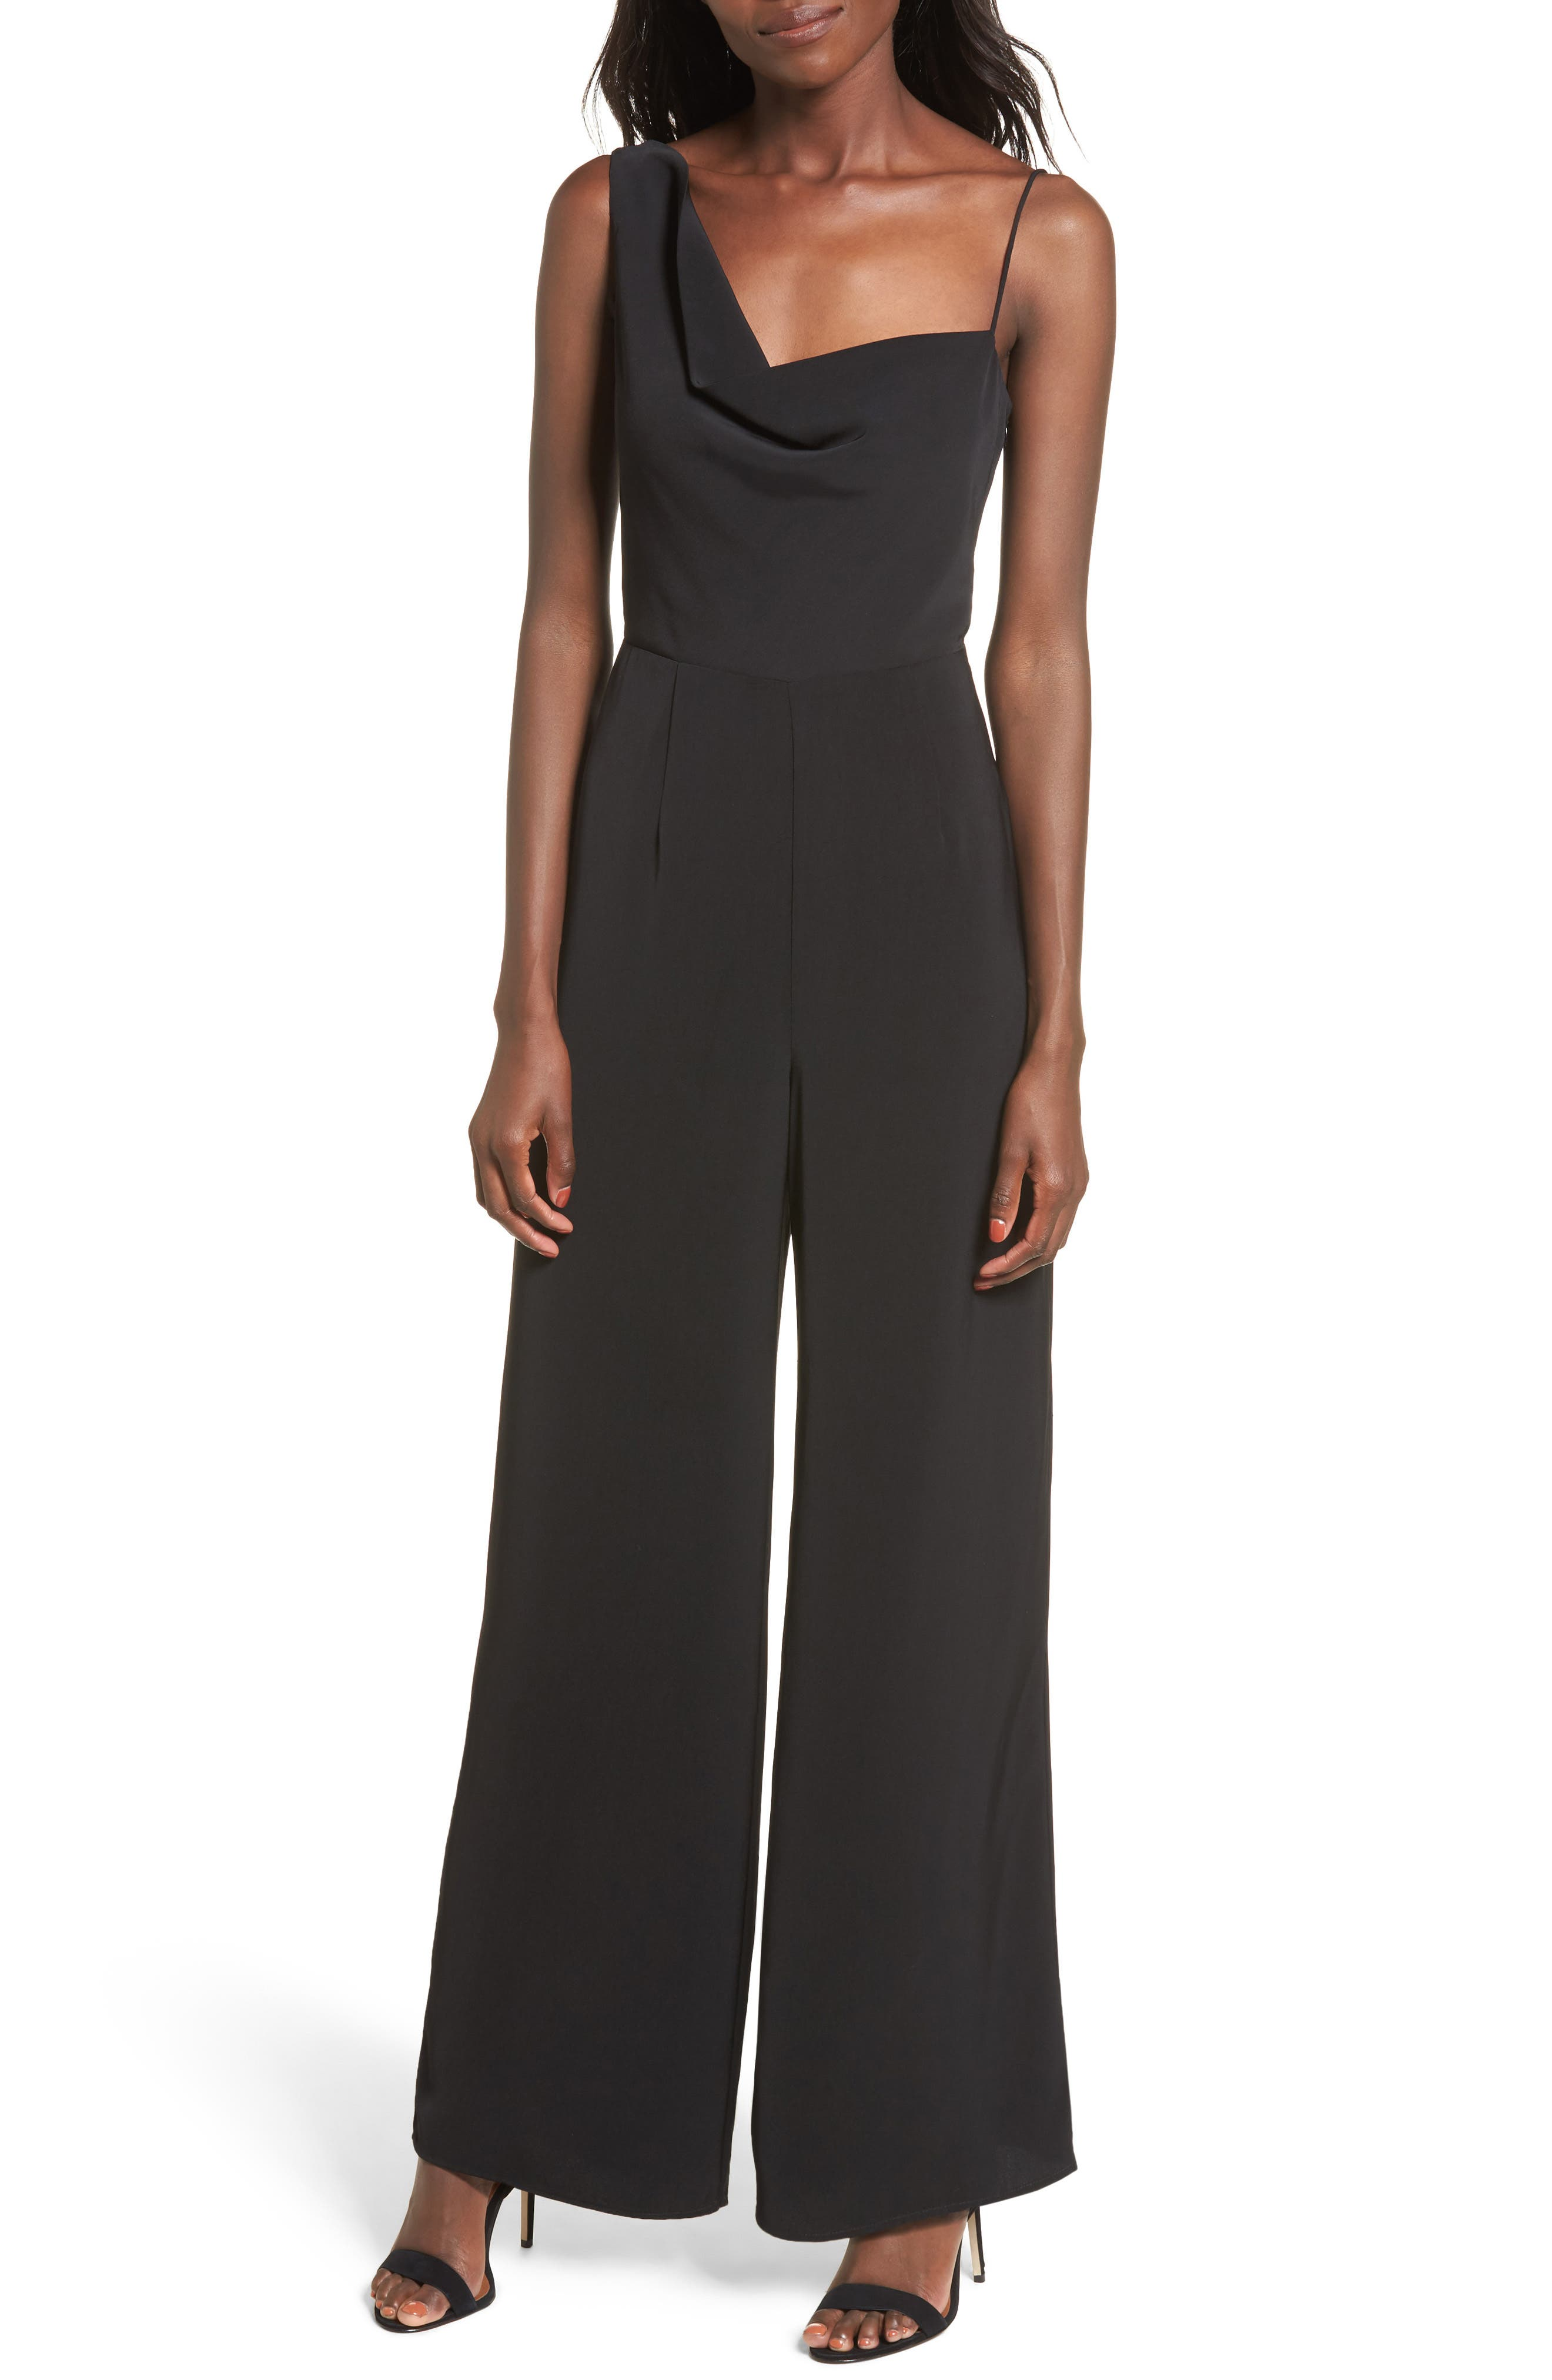 Be Mine Jumpsuit,                             Main thumbnail 1, color,                             Black